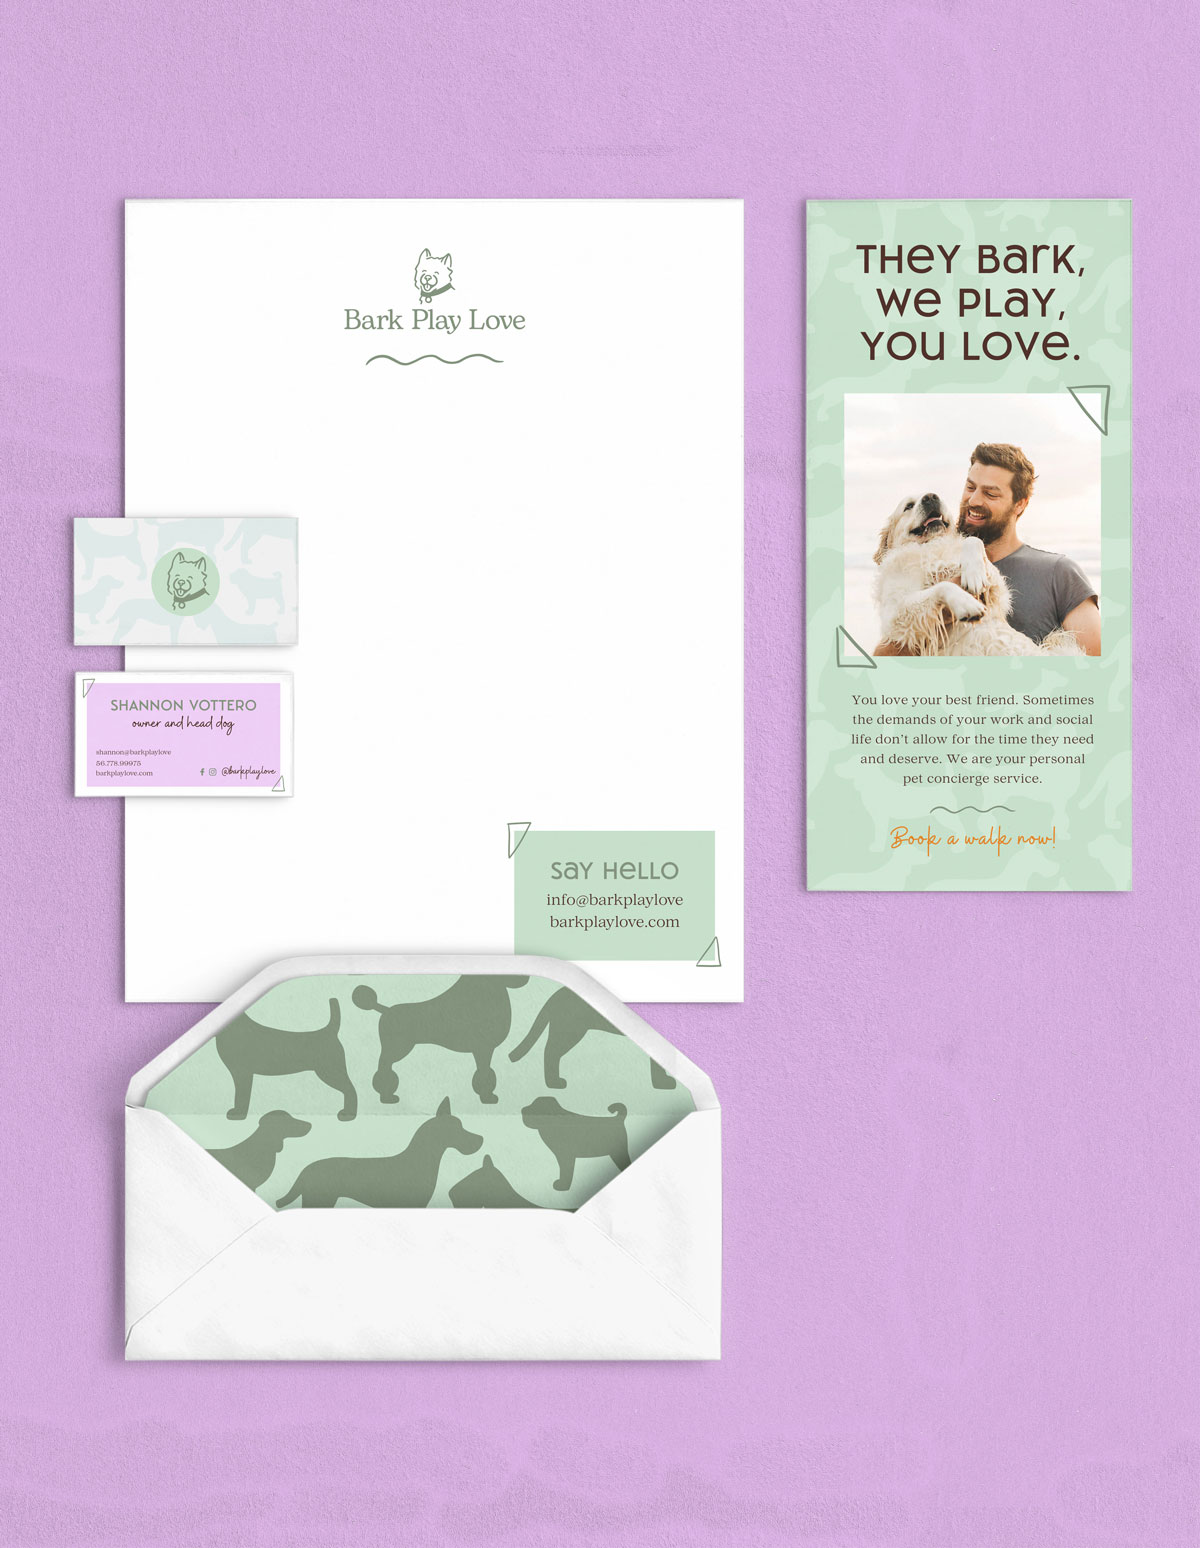 Bark Play Love stationary, business card, envelope, and brochure mockup